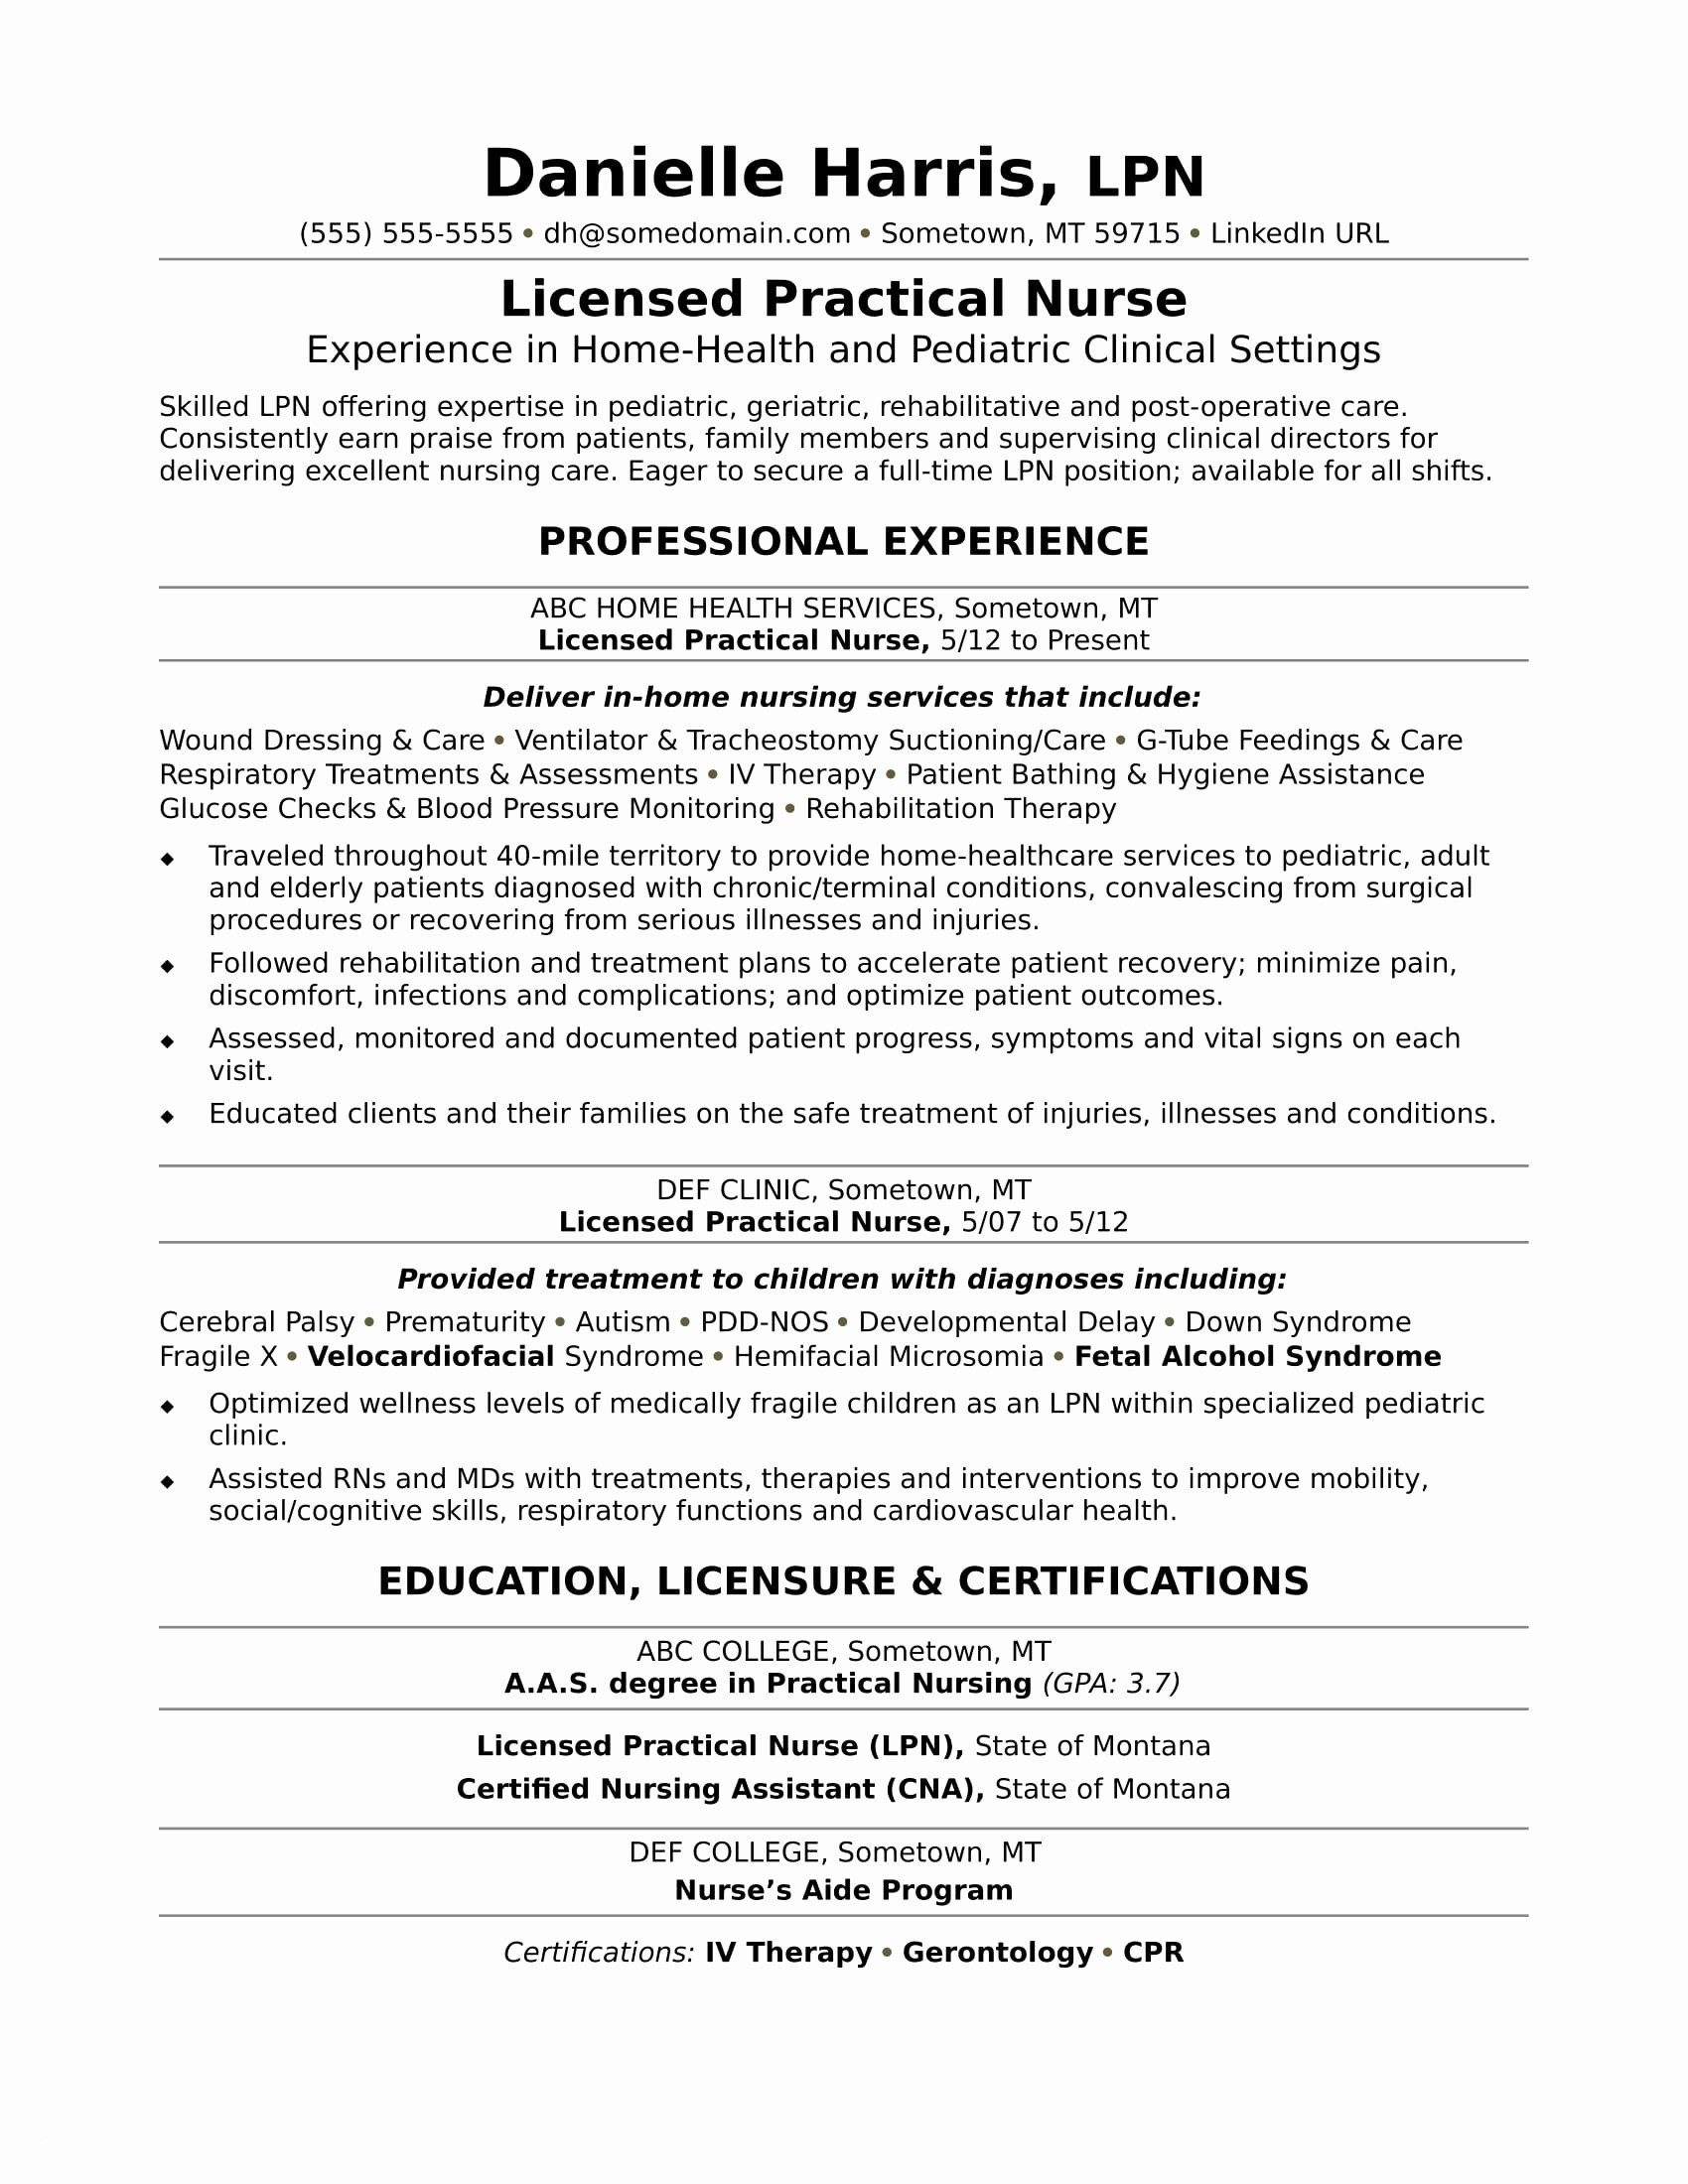 Home Health Nurse Resume - Sample Resume for A New Registered Nurse Resume Resume Examples